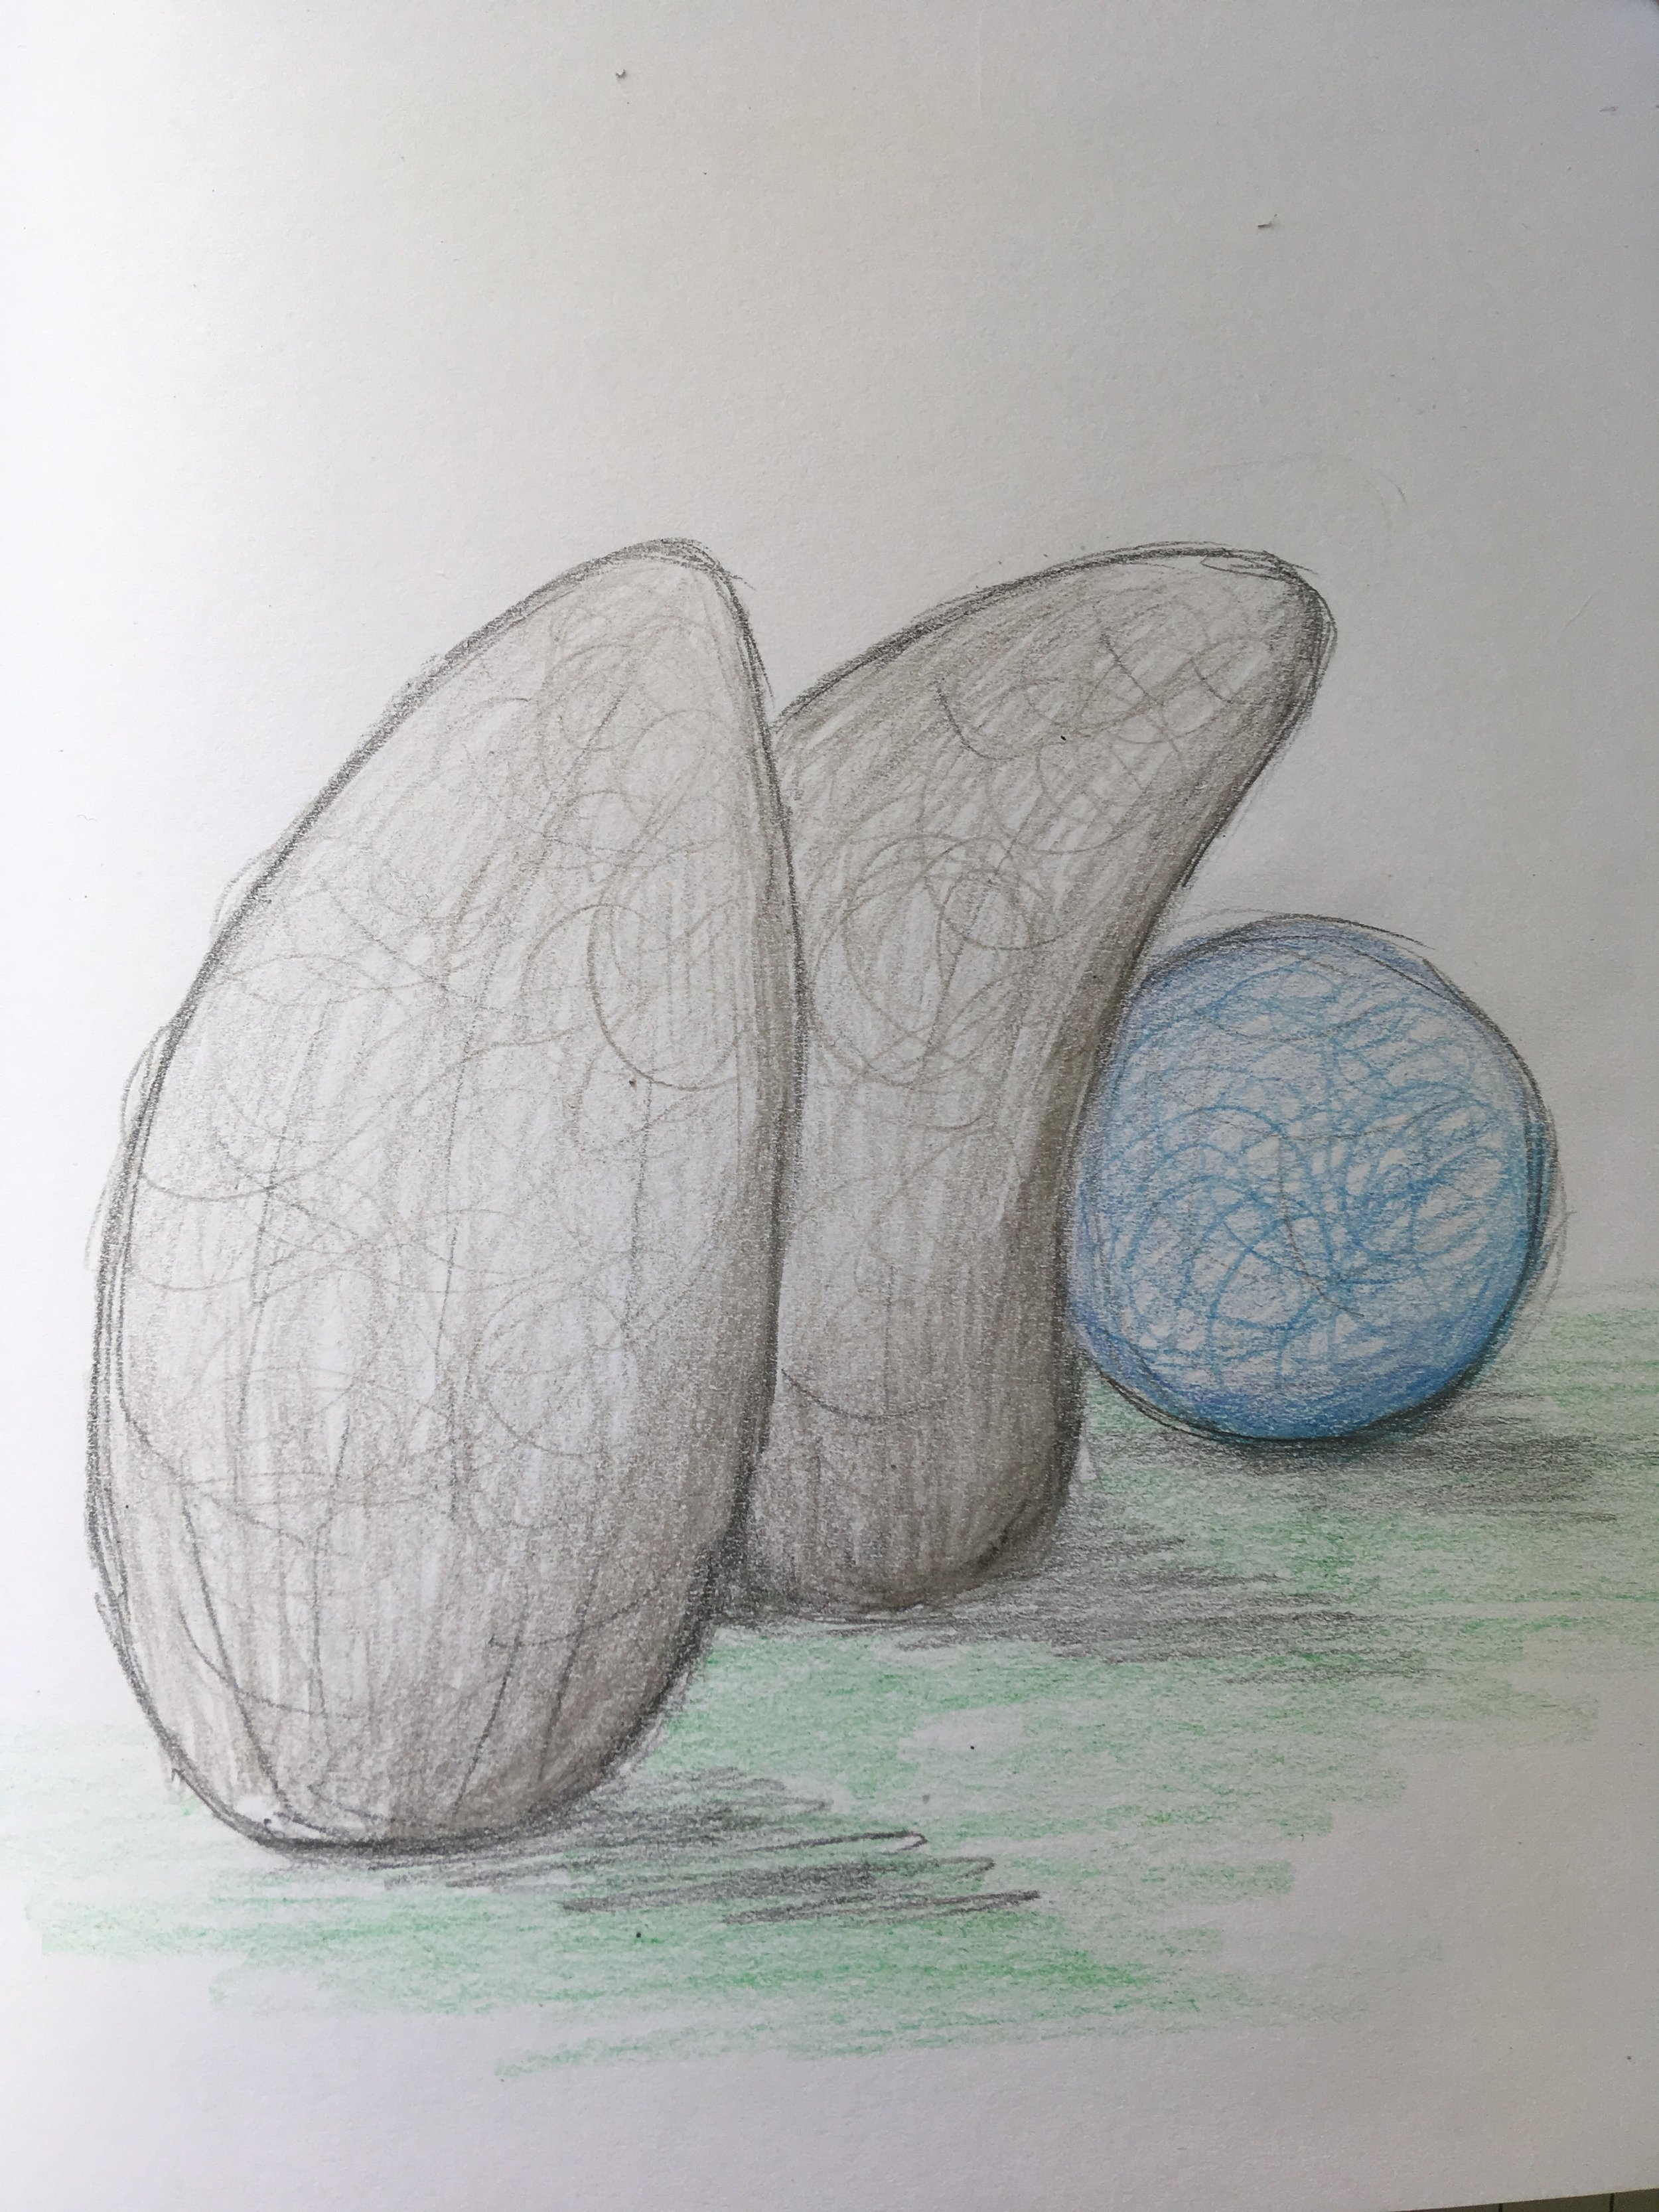 Development Sketch - Grouping of three figures in the landscape, just one of the ideas for the sculpture.